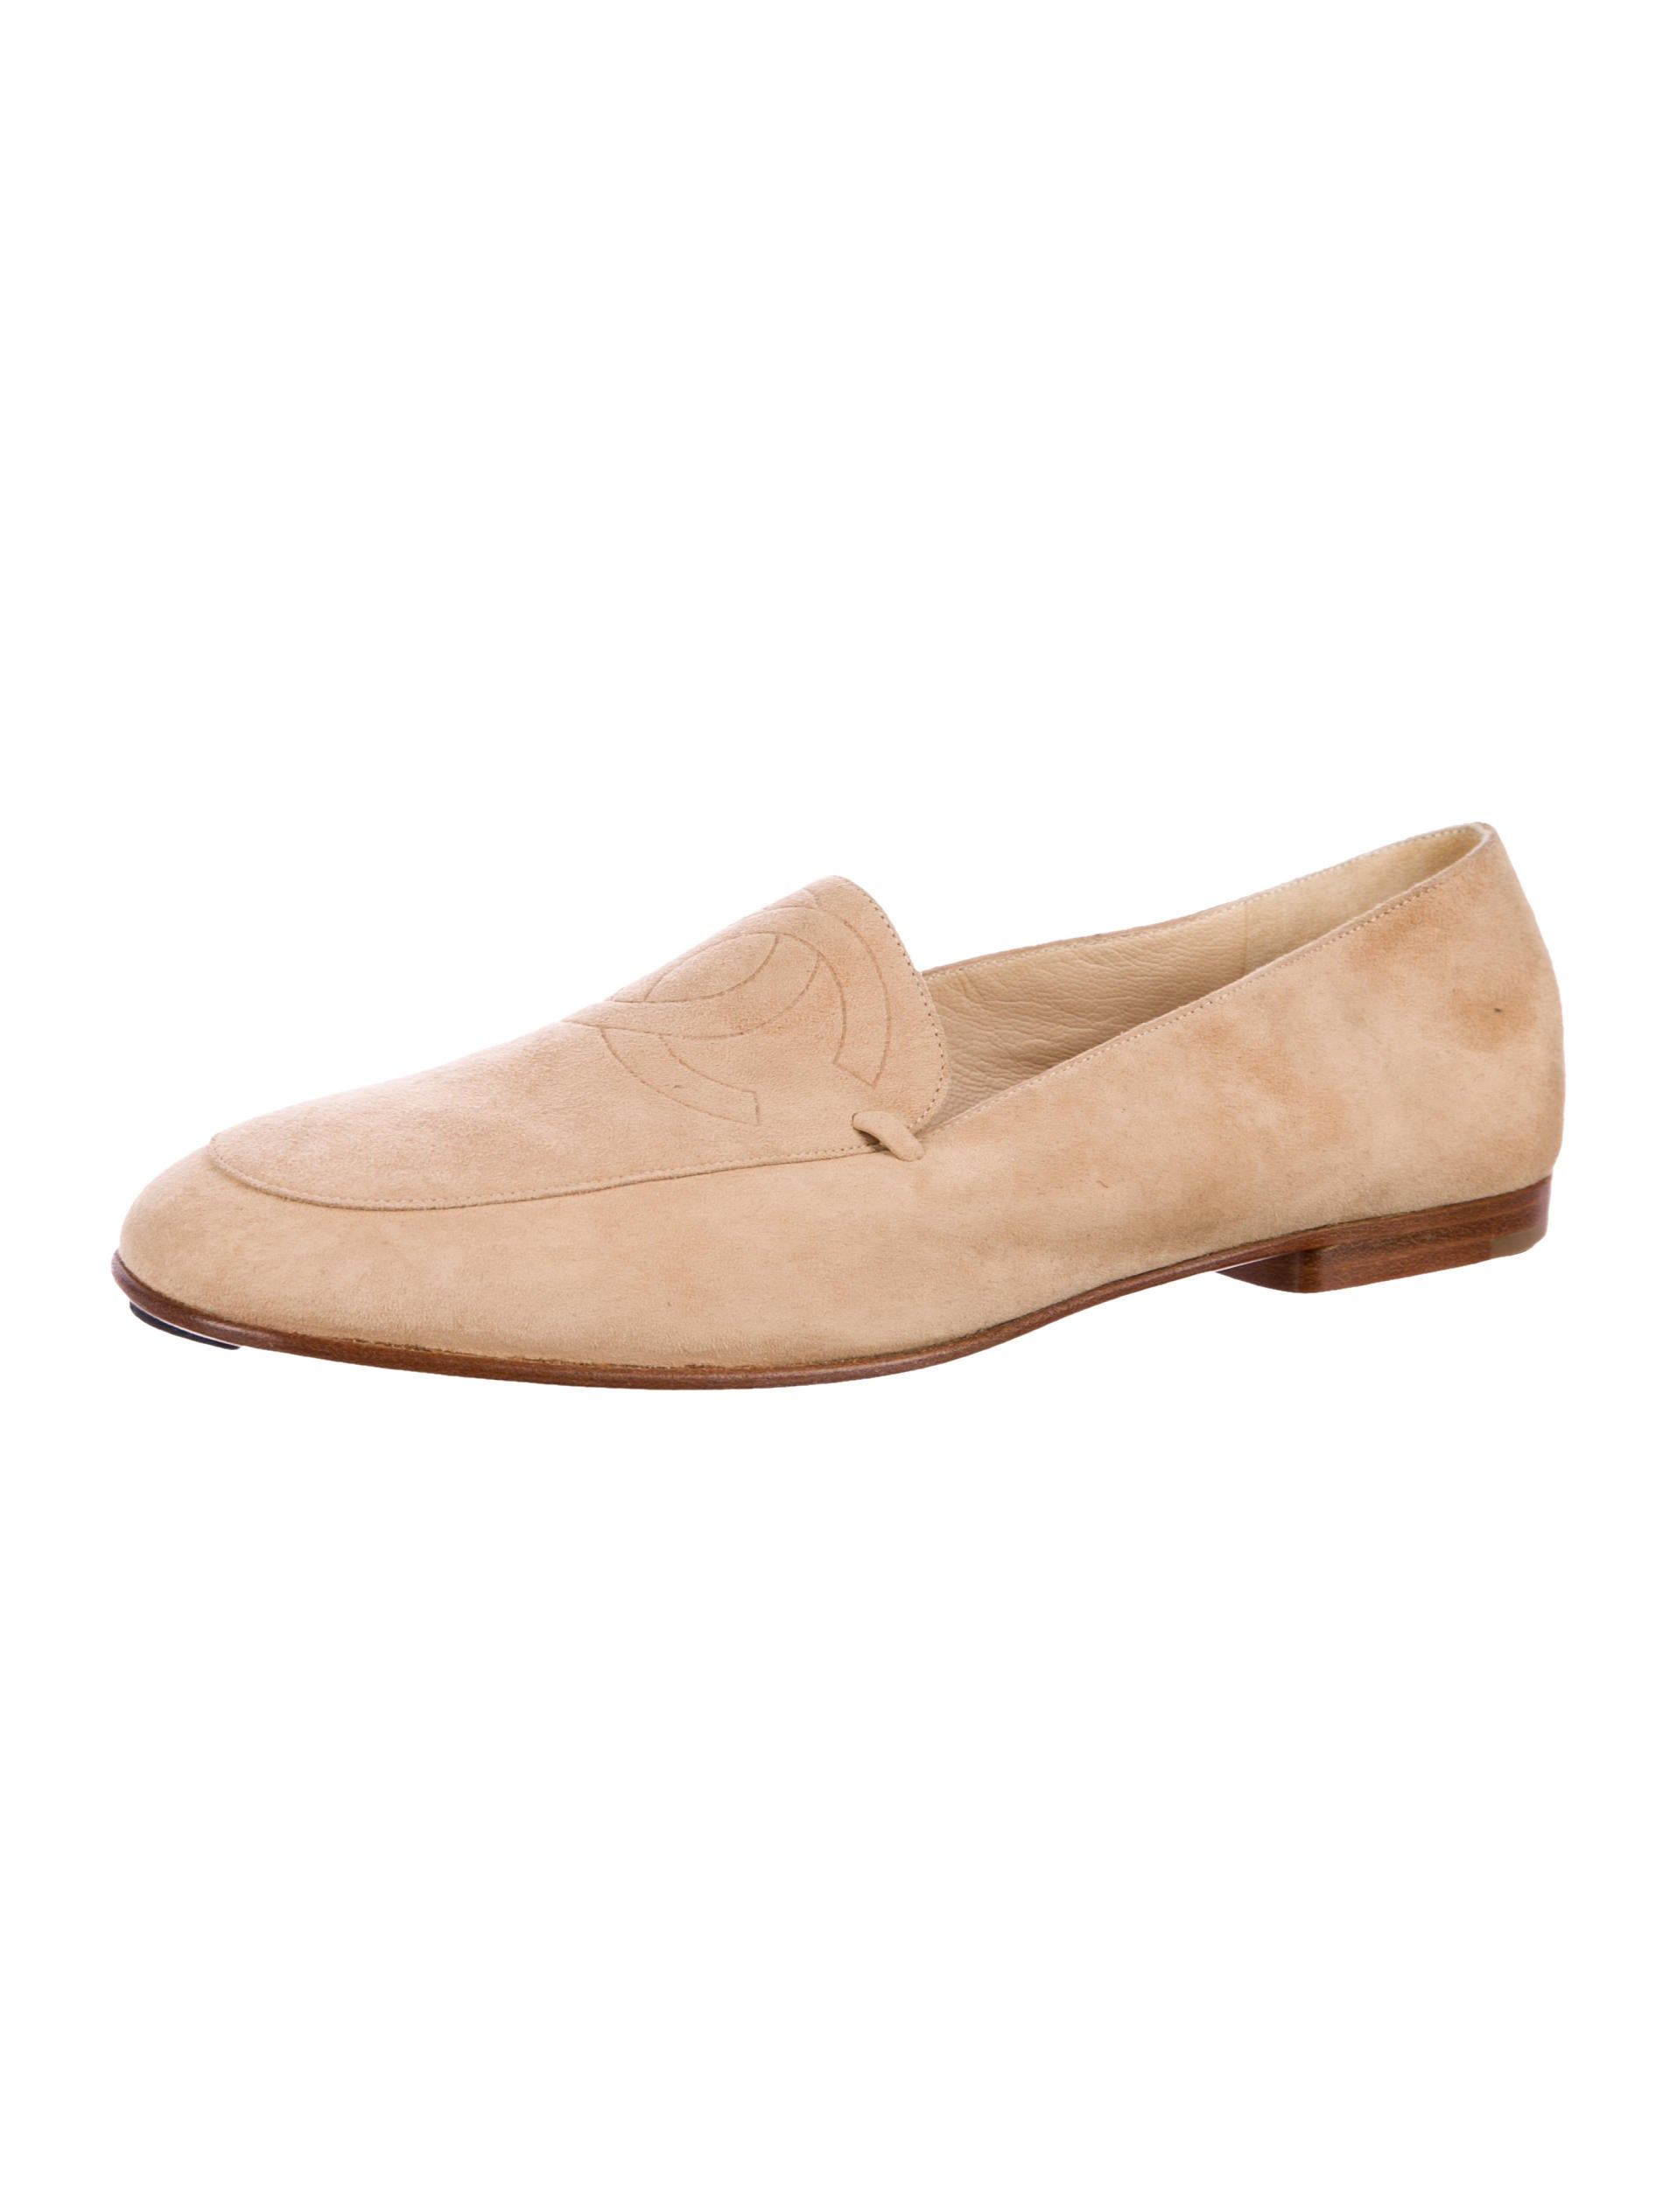 Chanel CC Suede Loafers - Shoes - CHA203653 | The RealReal